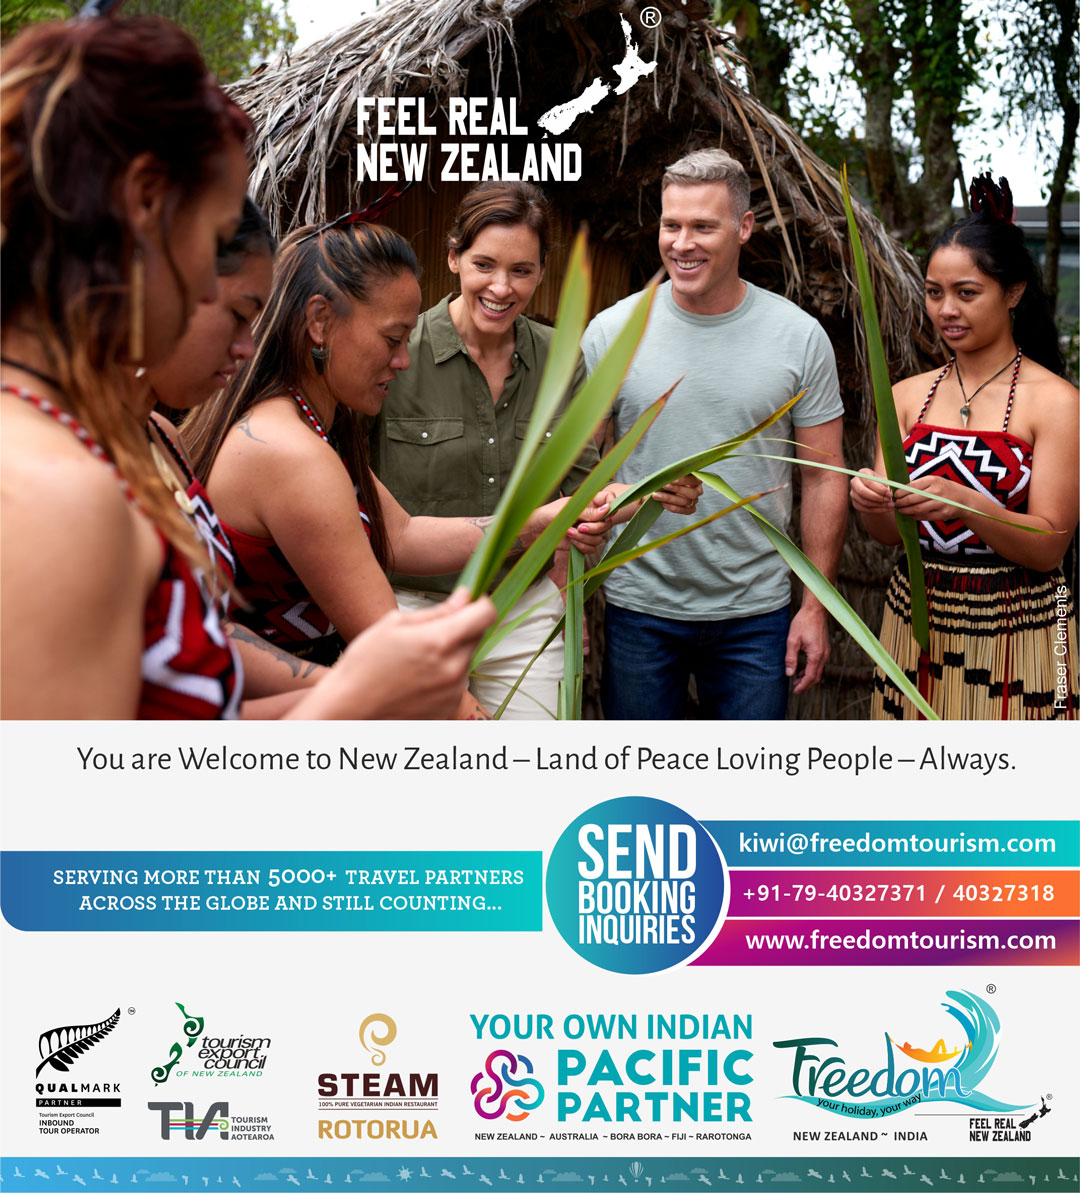 You are Welcome to New Zealand – Land of Peace Loving People – Always! Feel Real New Zealand with Freedom Tourism.